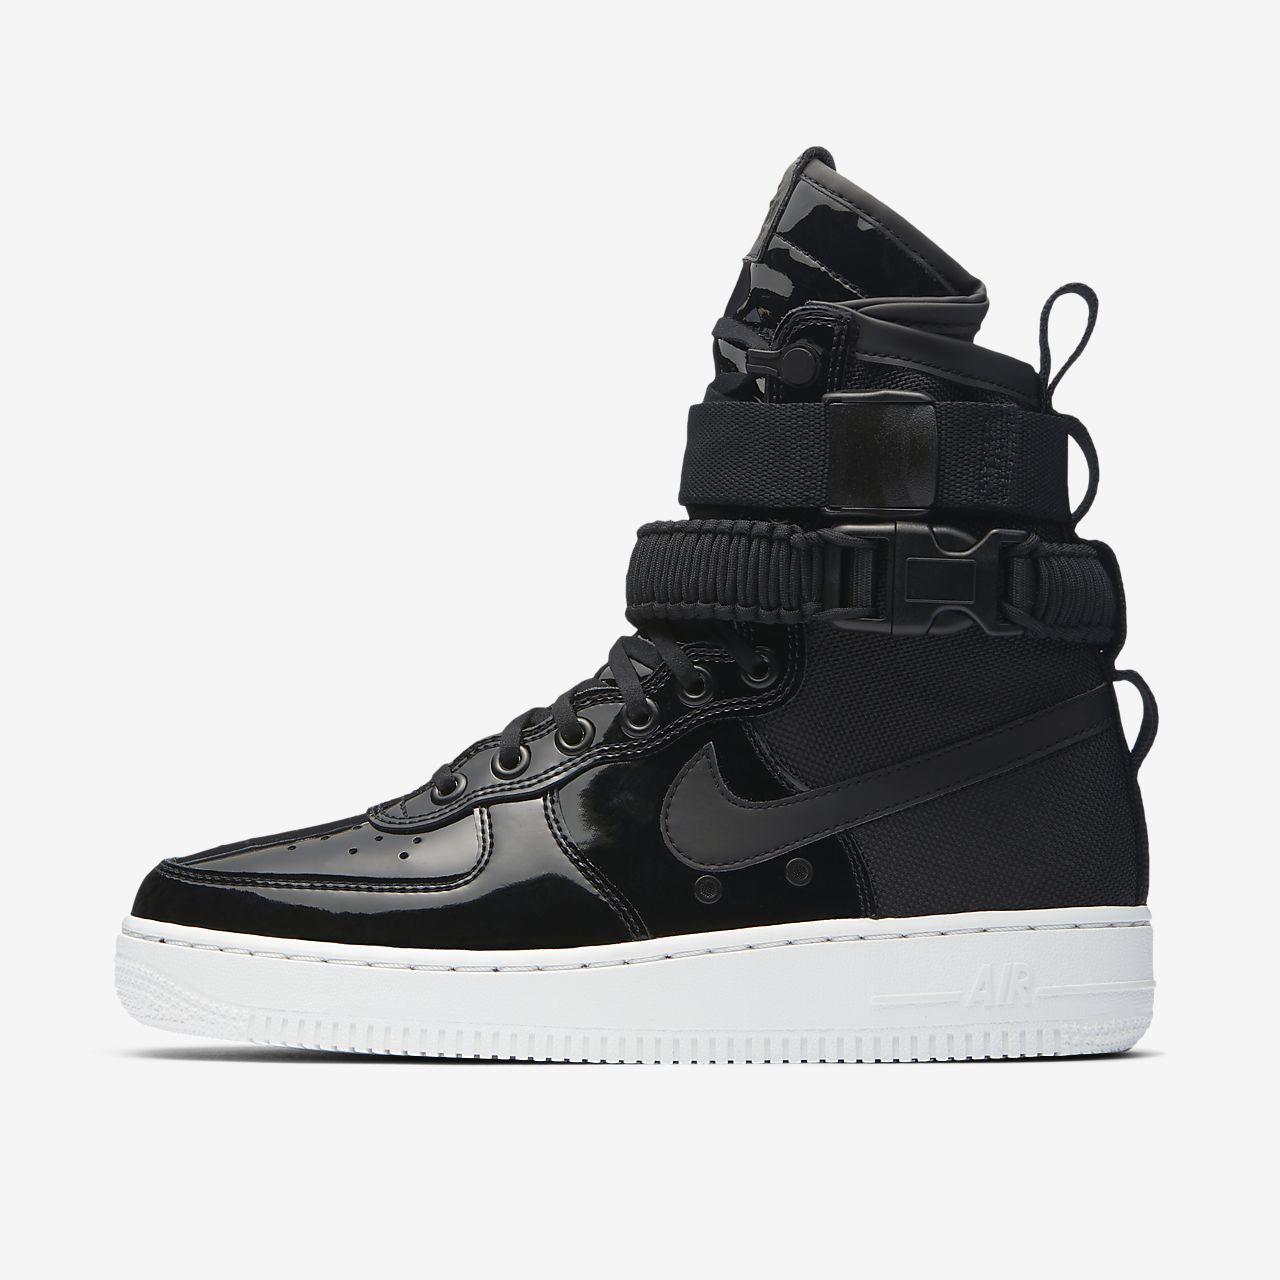 sf air force 1 nz